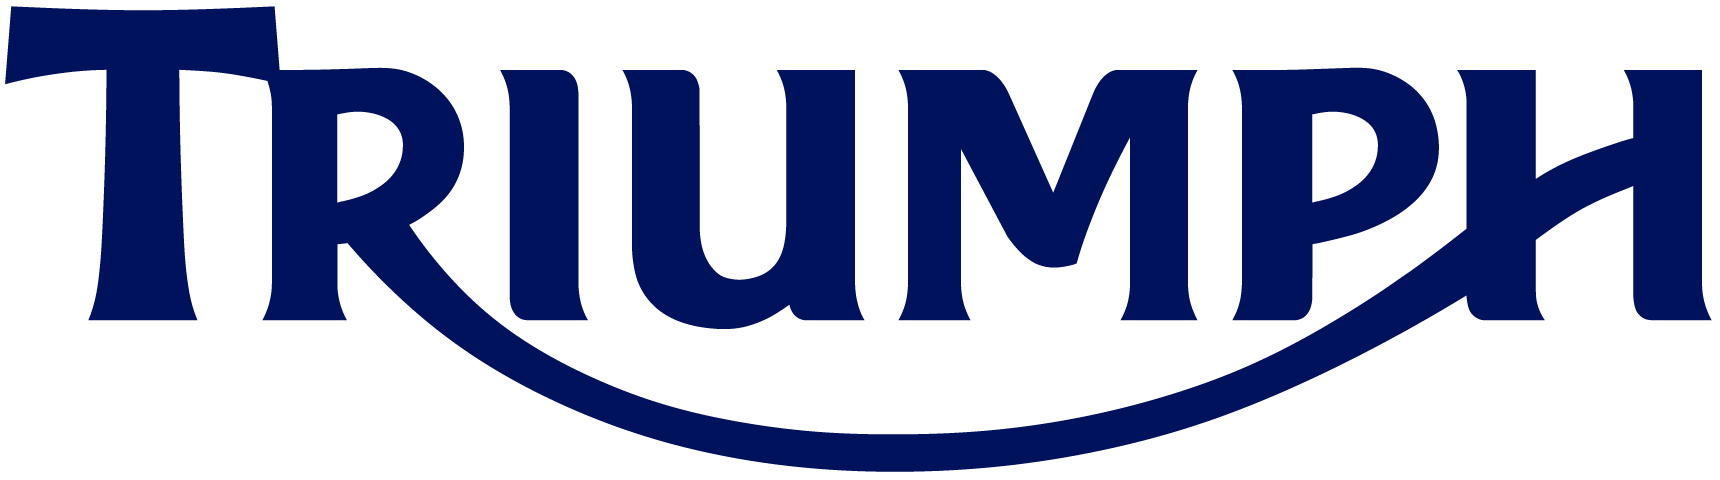 logo of triumph